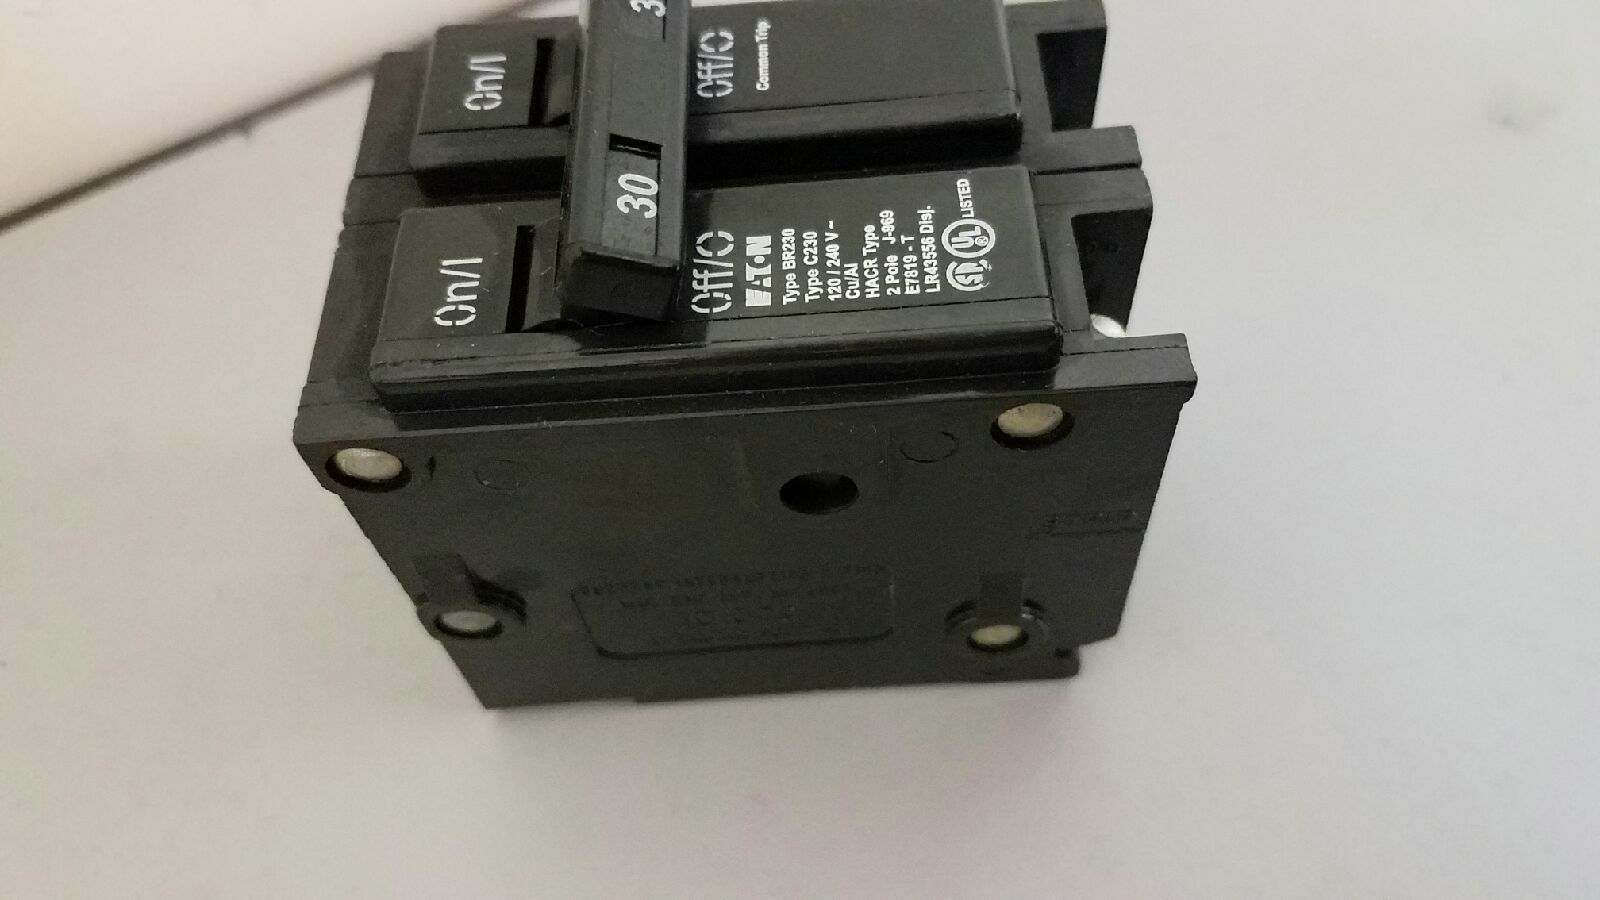 New Eaton Cutler Hammer Br230 C230 30 Amp Circuit Breaker 120 240v Arc Fault 15 240 Volt Ac 1pole Plugon 2pole 1 Of 3free Shipping